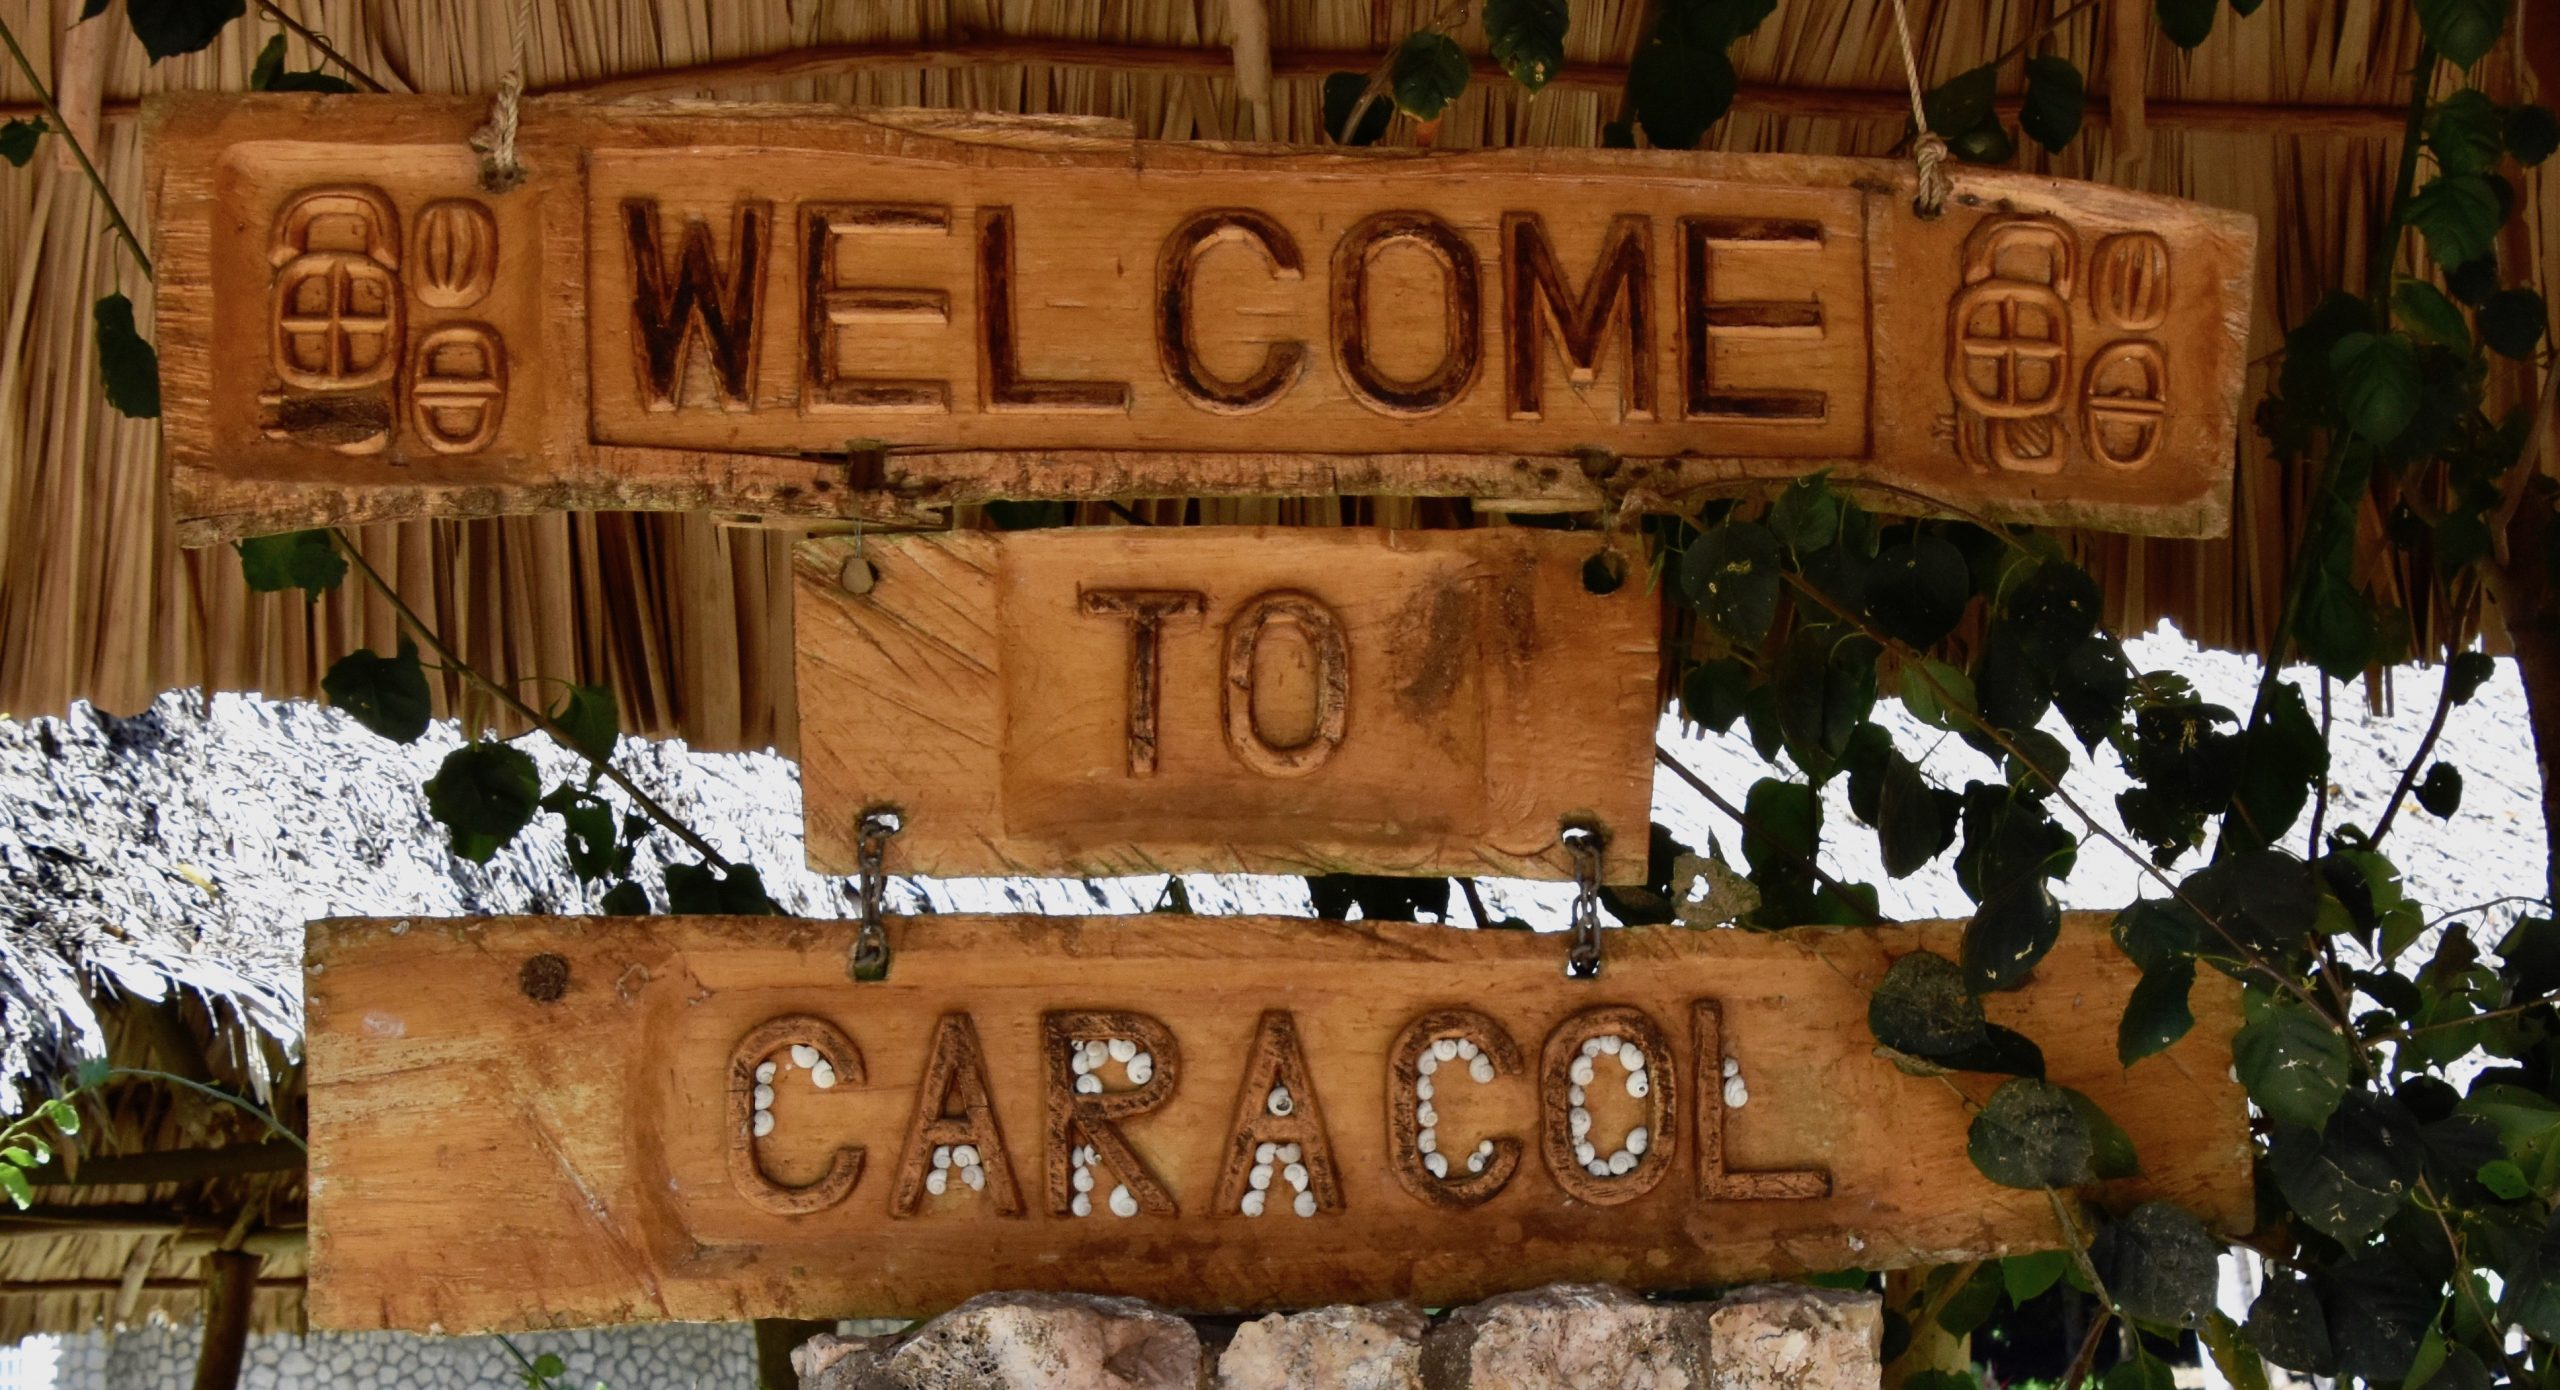 Caracol Sign